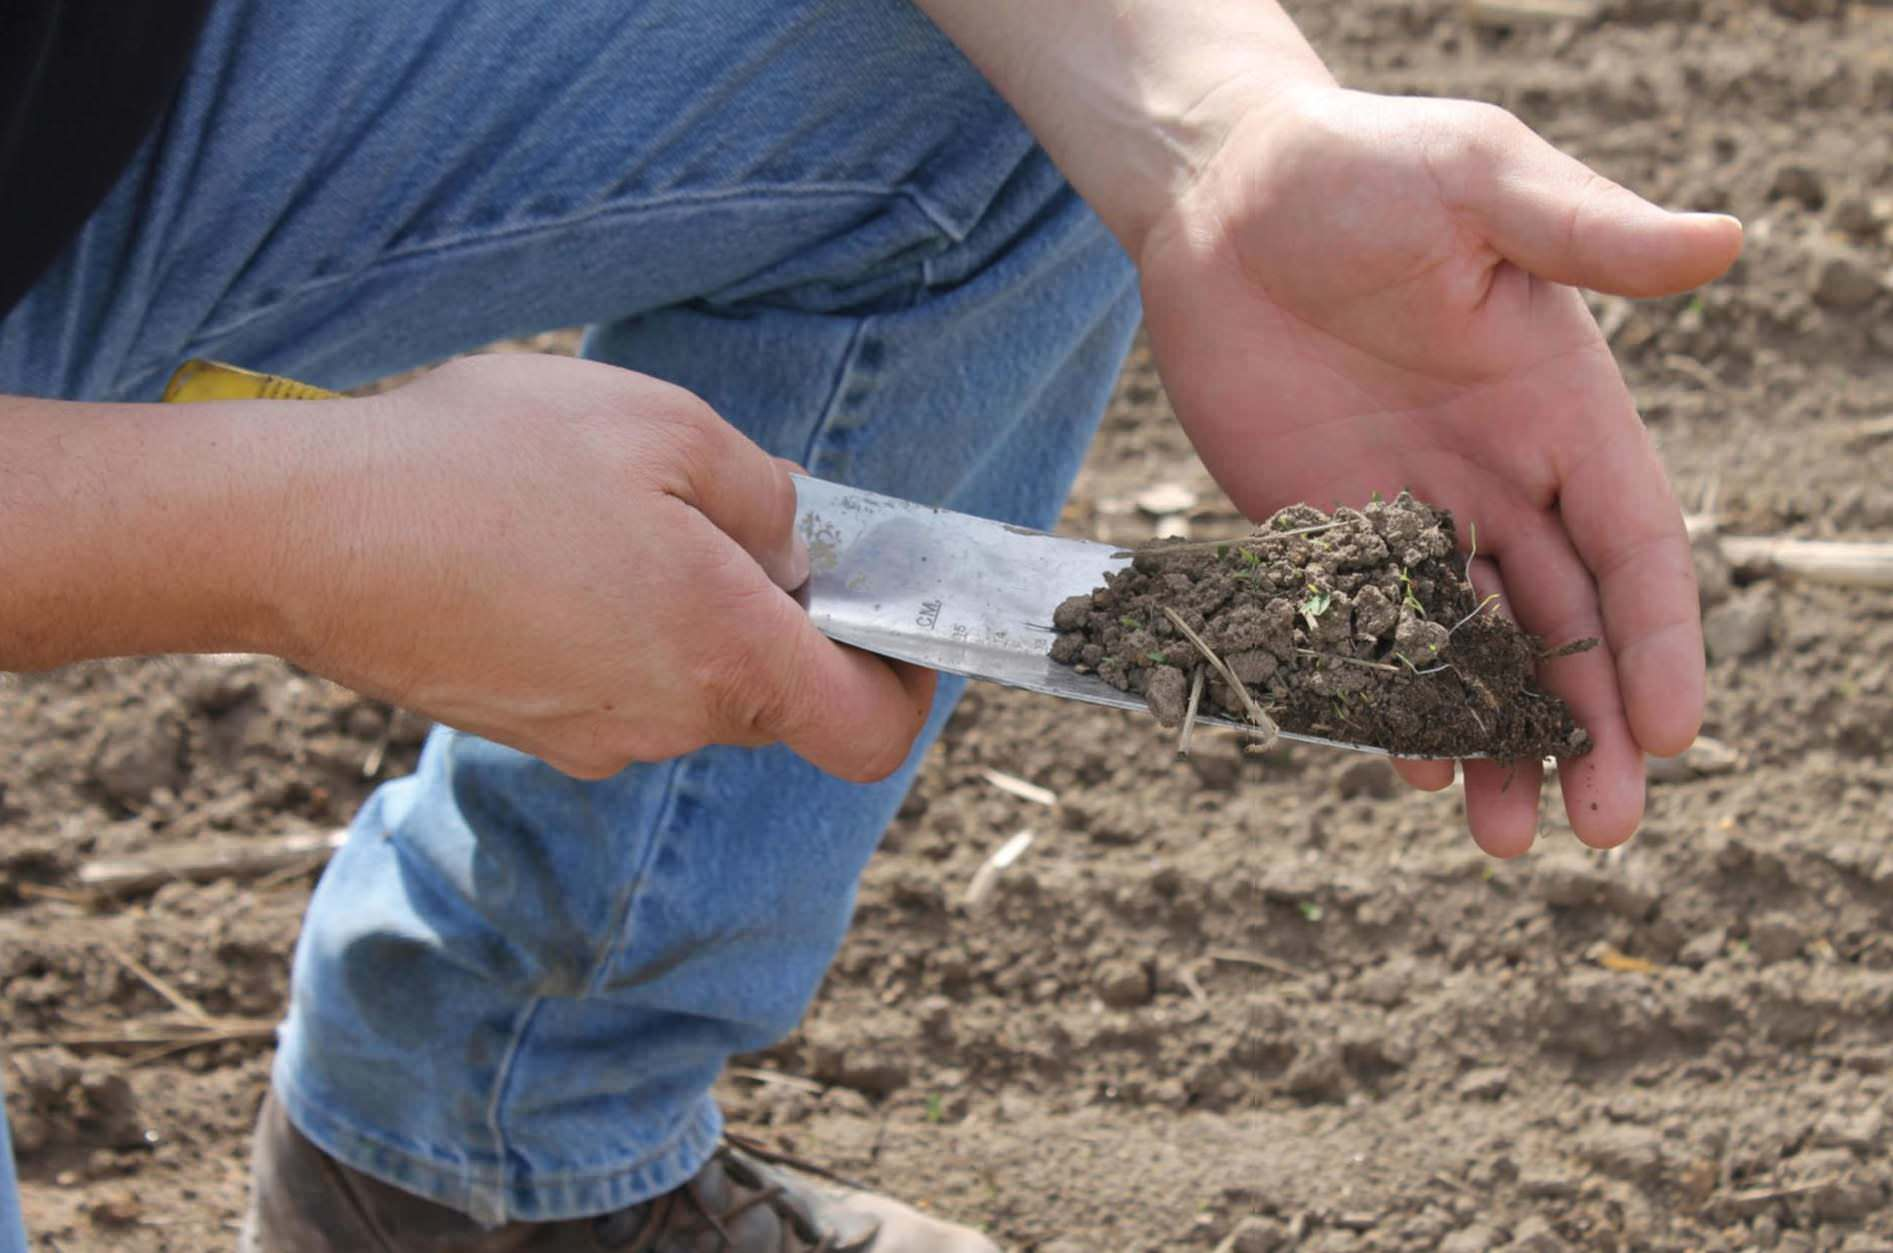 Protecting Soil Should Be Topmost Priority